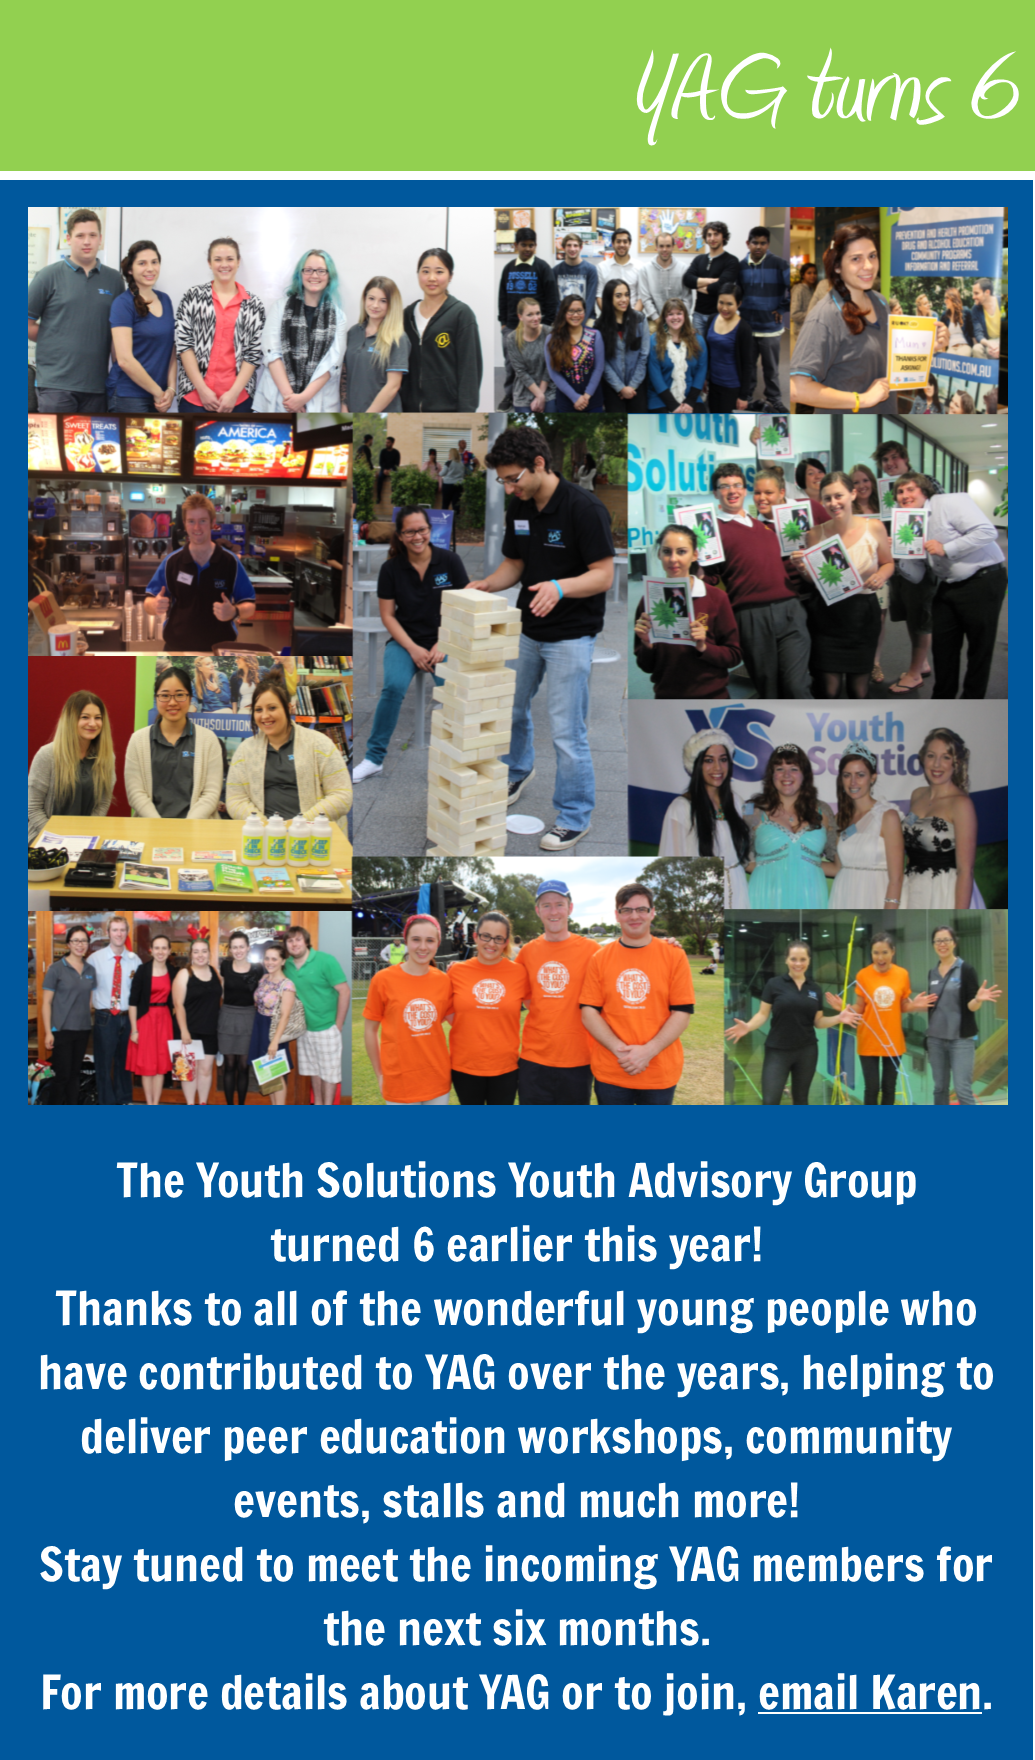 Youth Solutions YAG turns 6